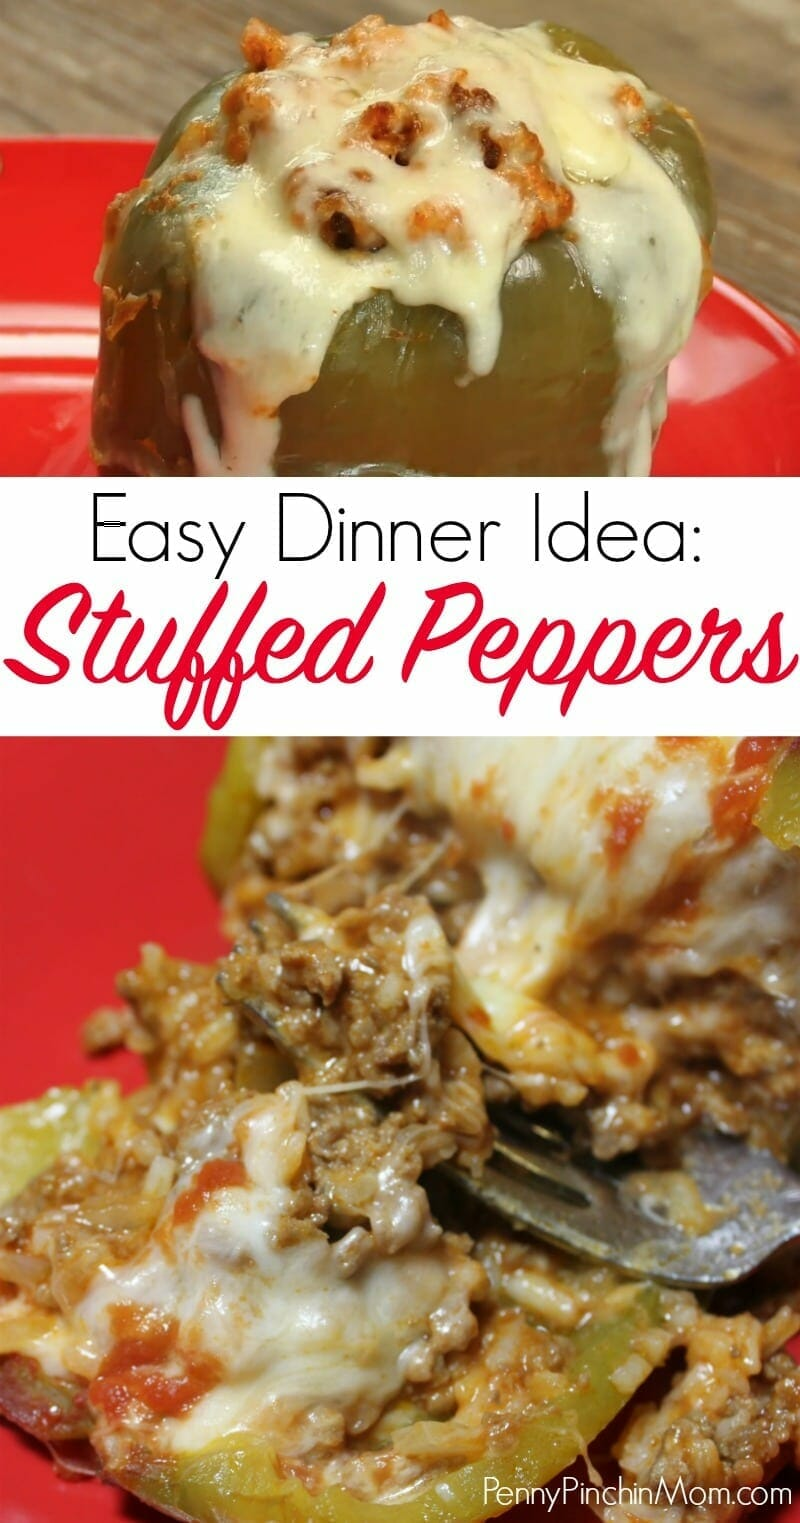 Classic Stuffed Bell Peppers